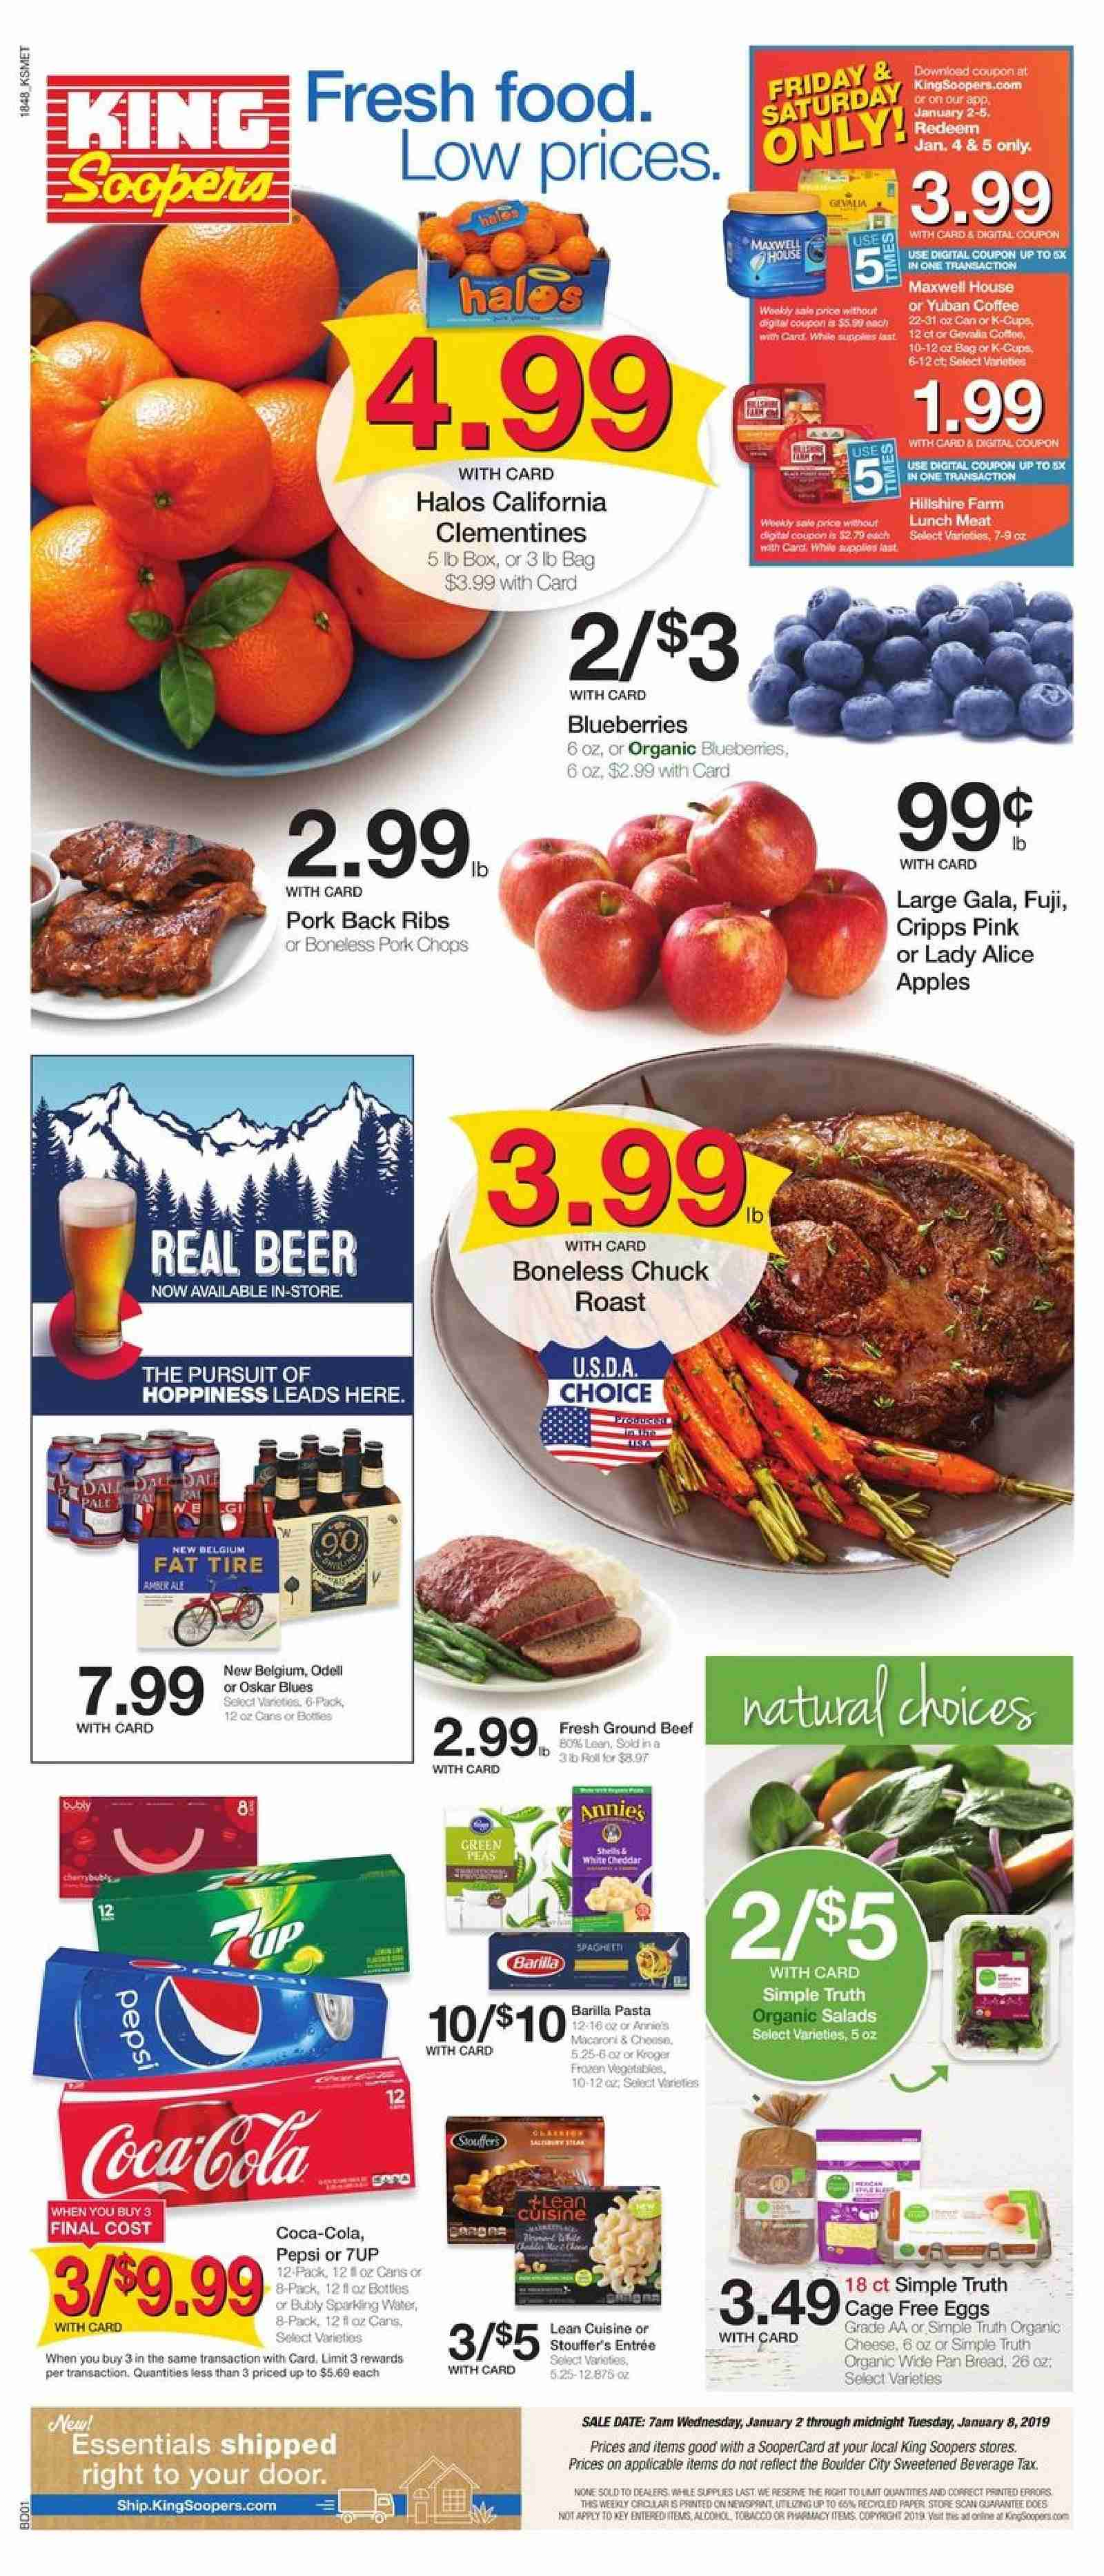 King Soopers Flyer  - 01.02.2019 - 01.08.2019. Page 1.